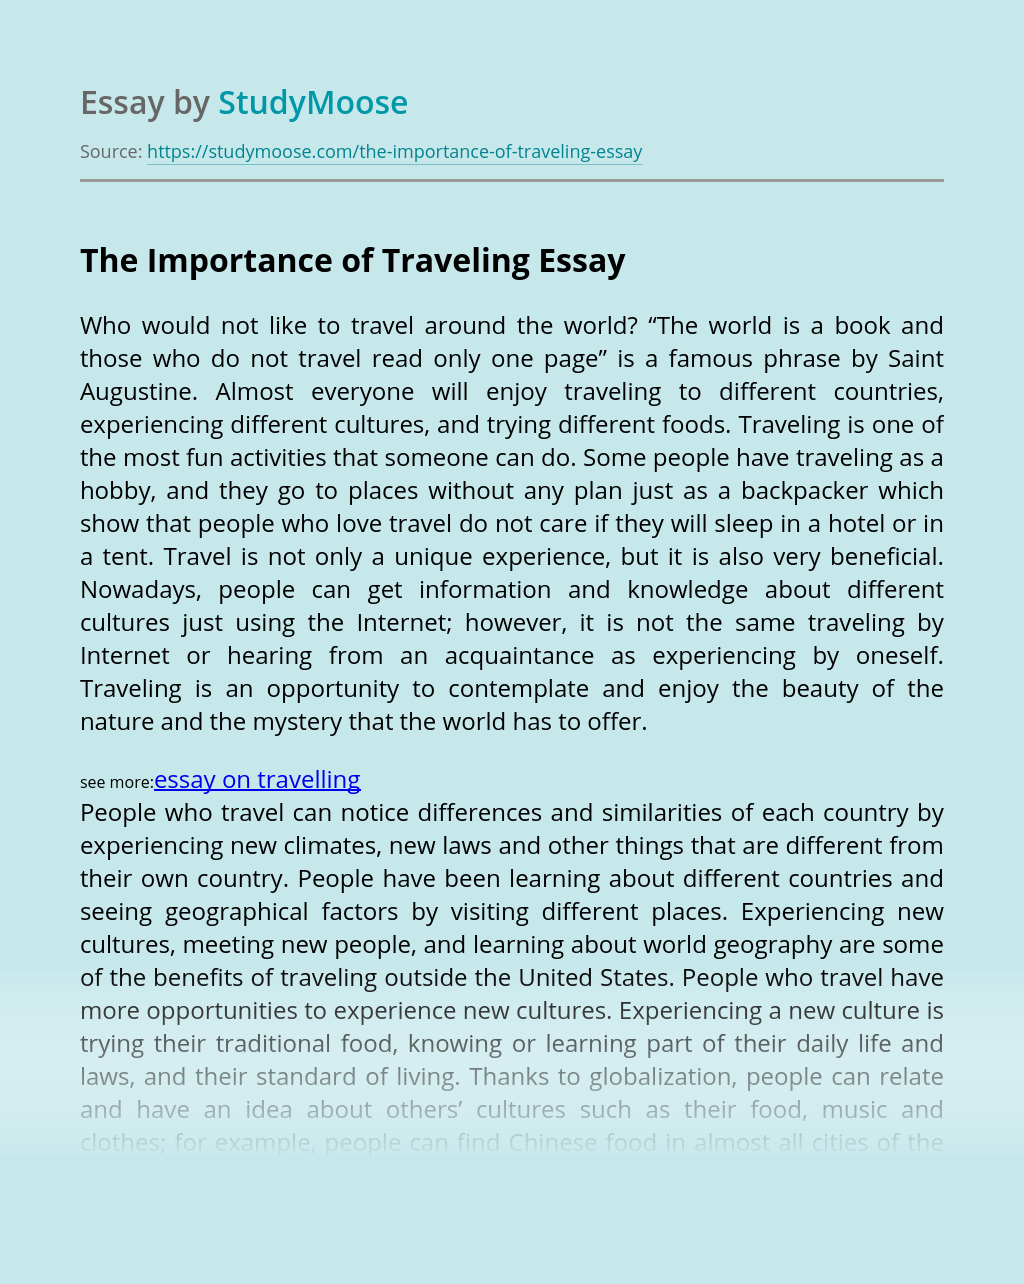 The Importance of Traveling